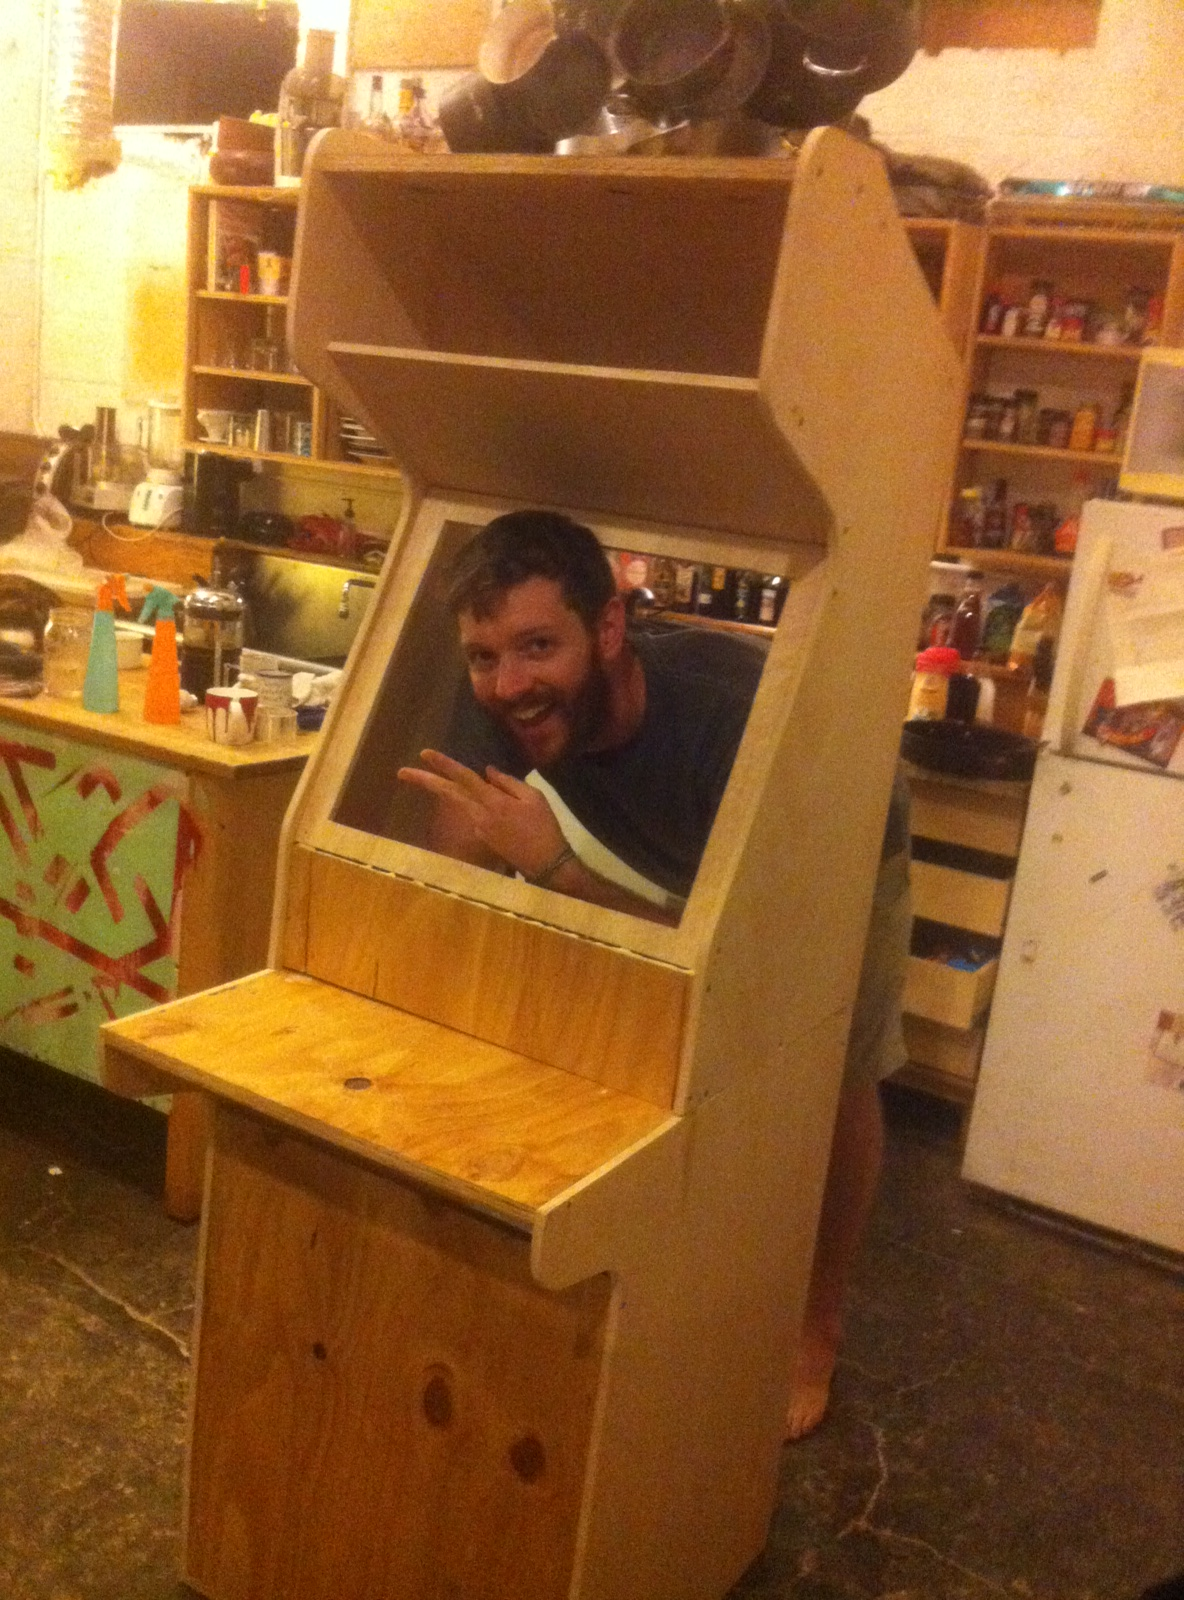 Studio Mercato How To Build An Indie Arcade Cabinethow